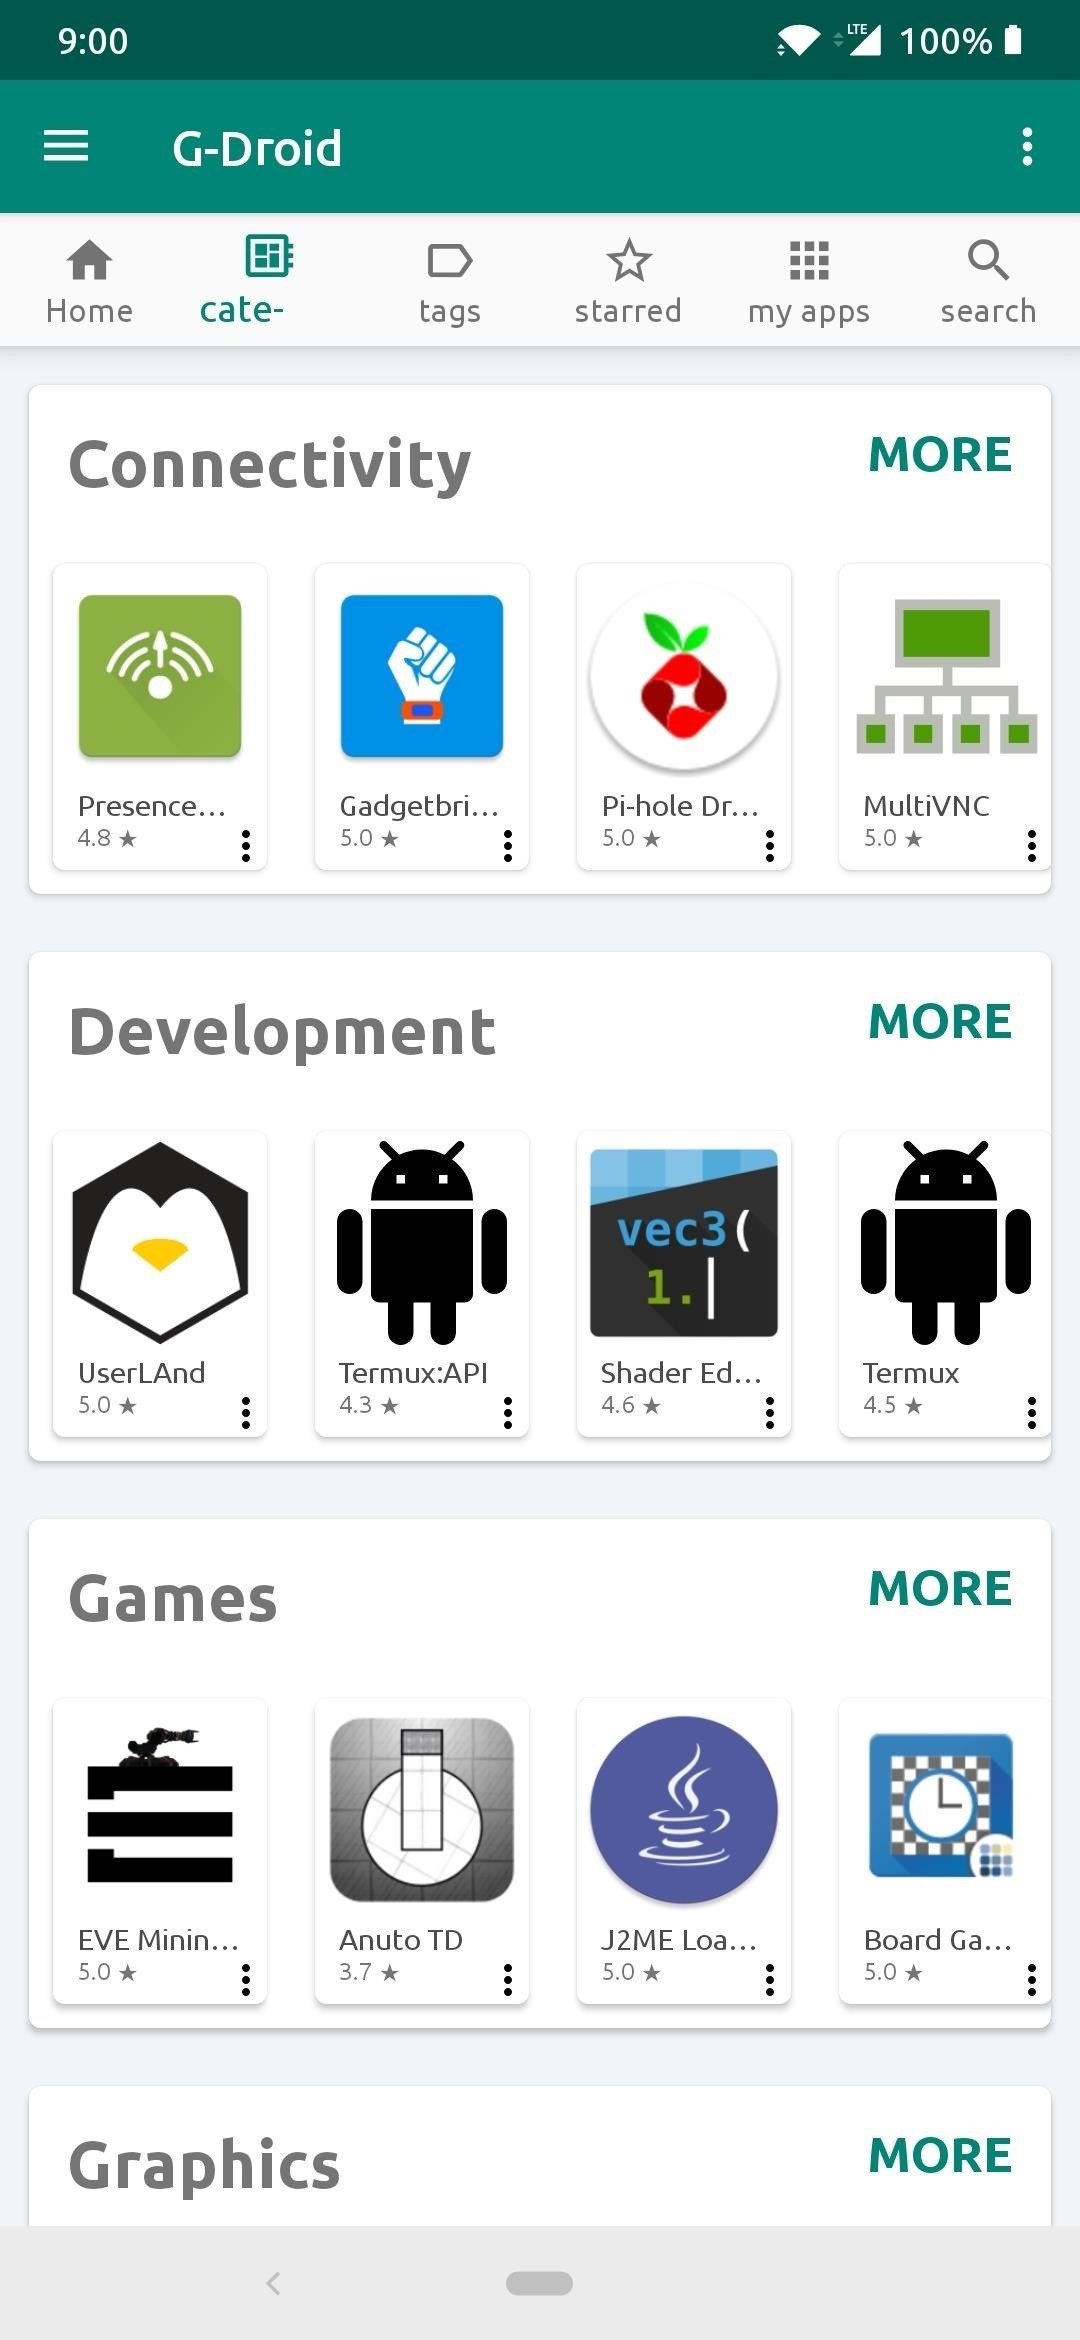 The Ultimate Guide to Using Android Without Google